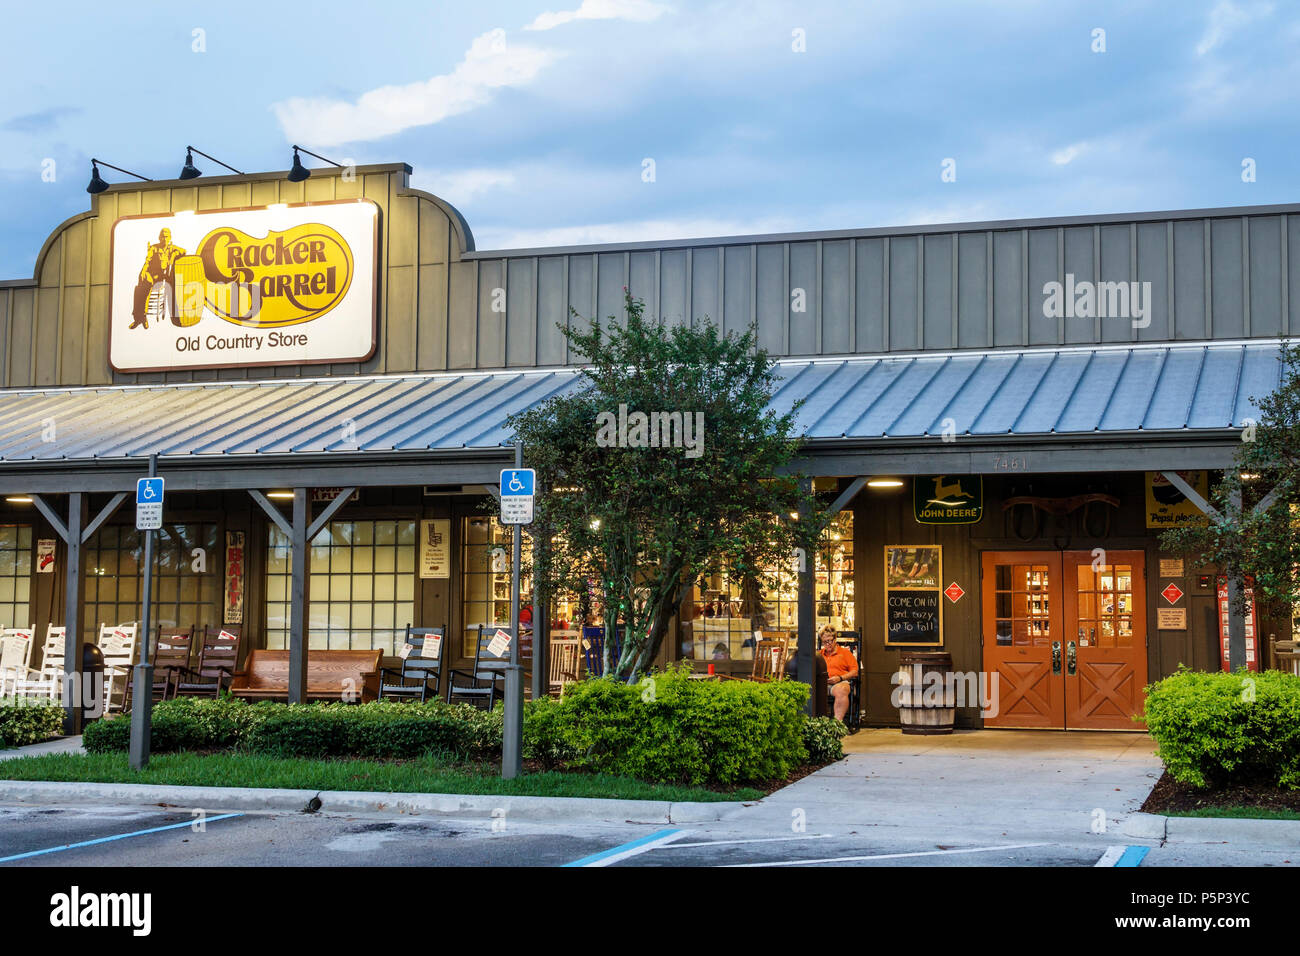 Cafe Exterior Front High Resolution Stock Photography And Images Alamy